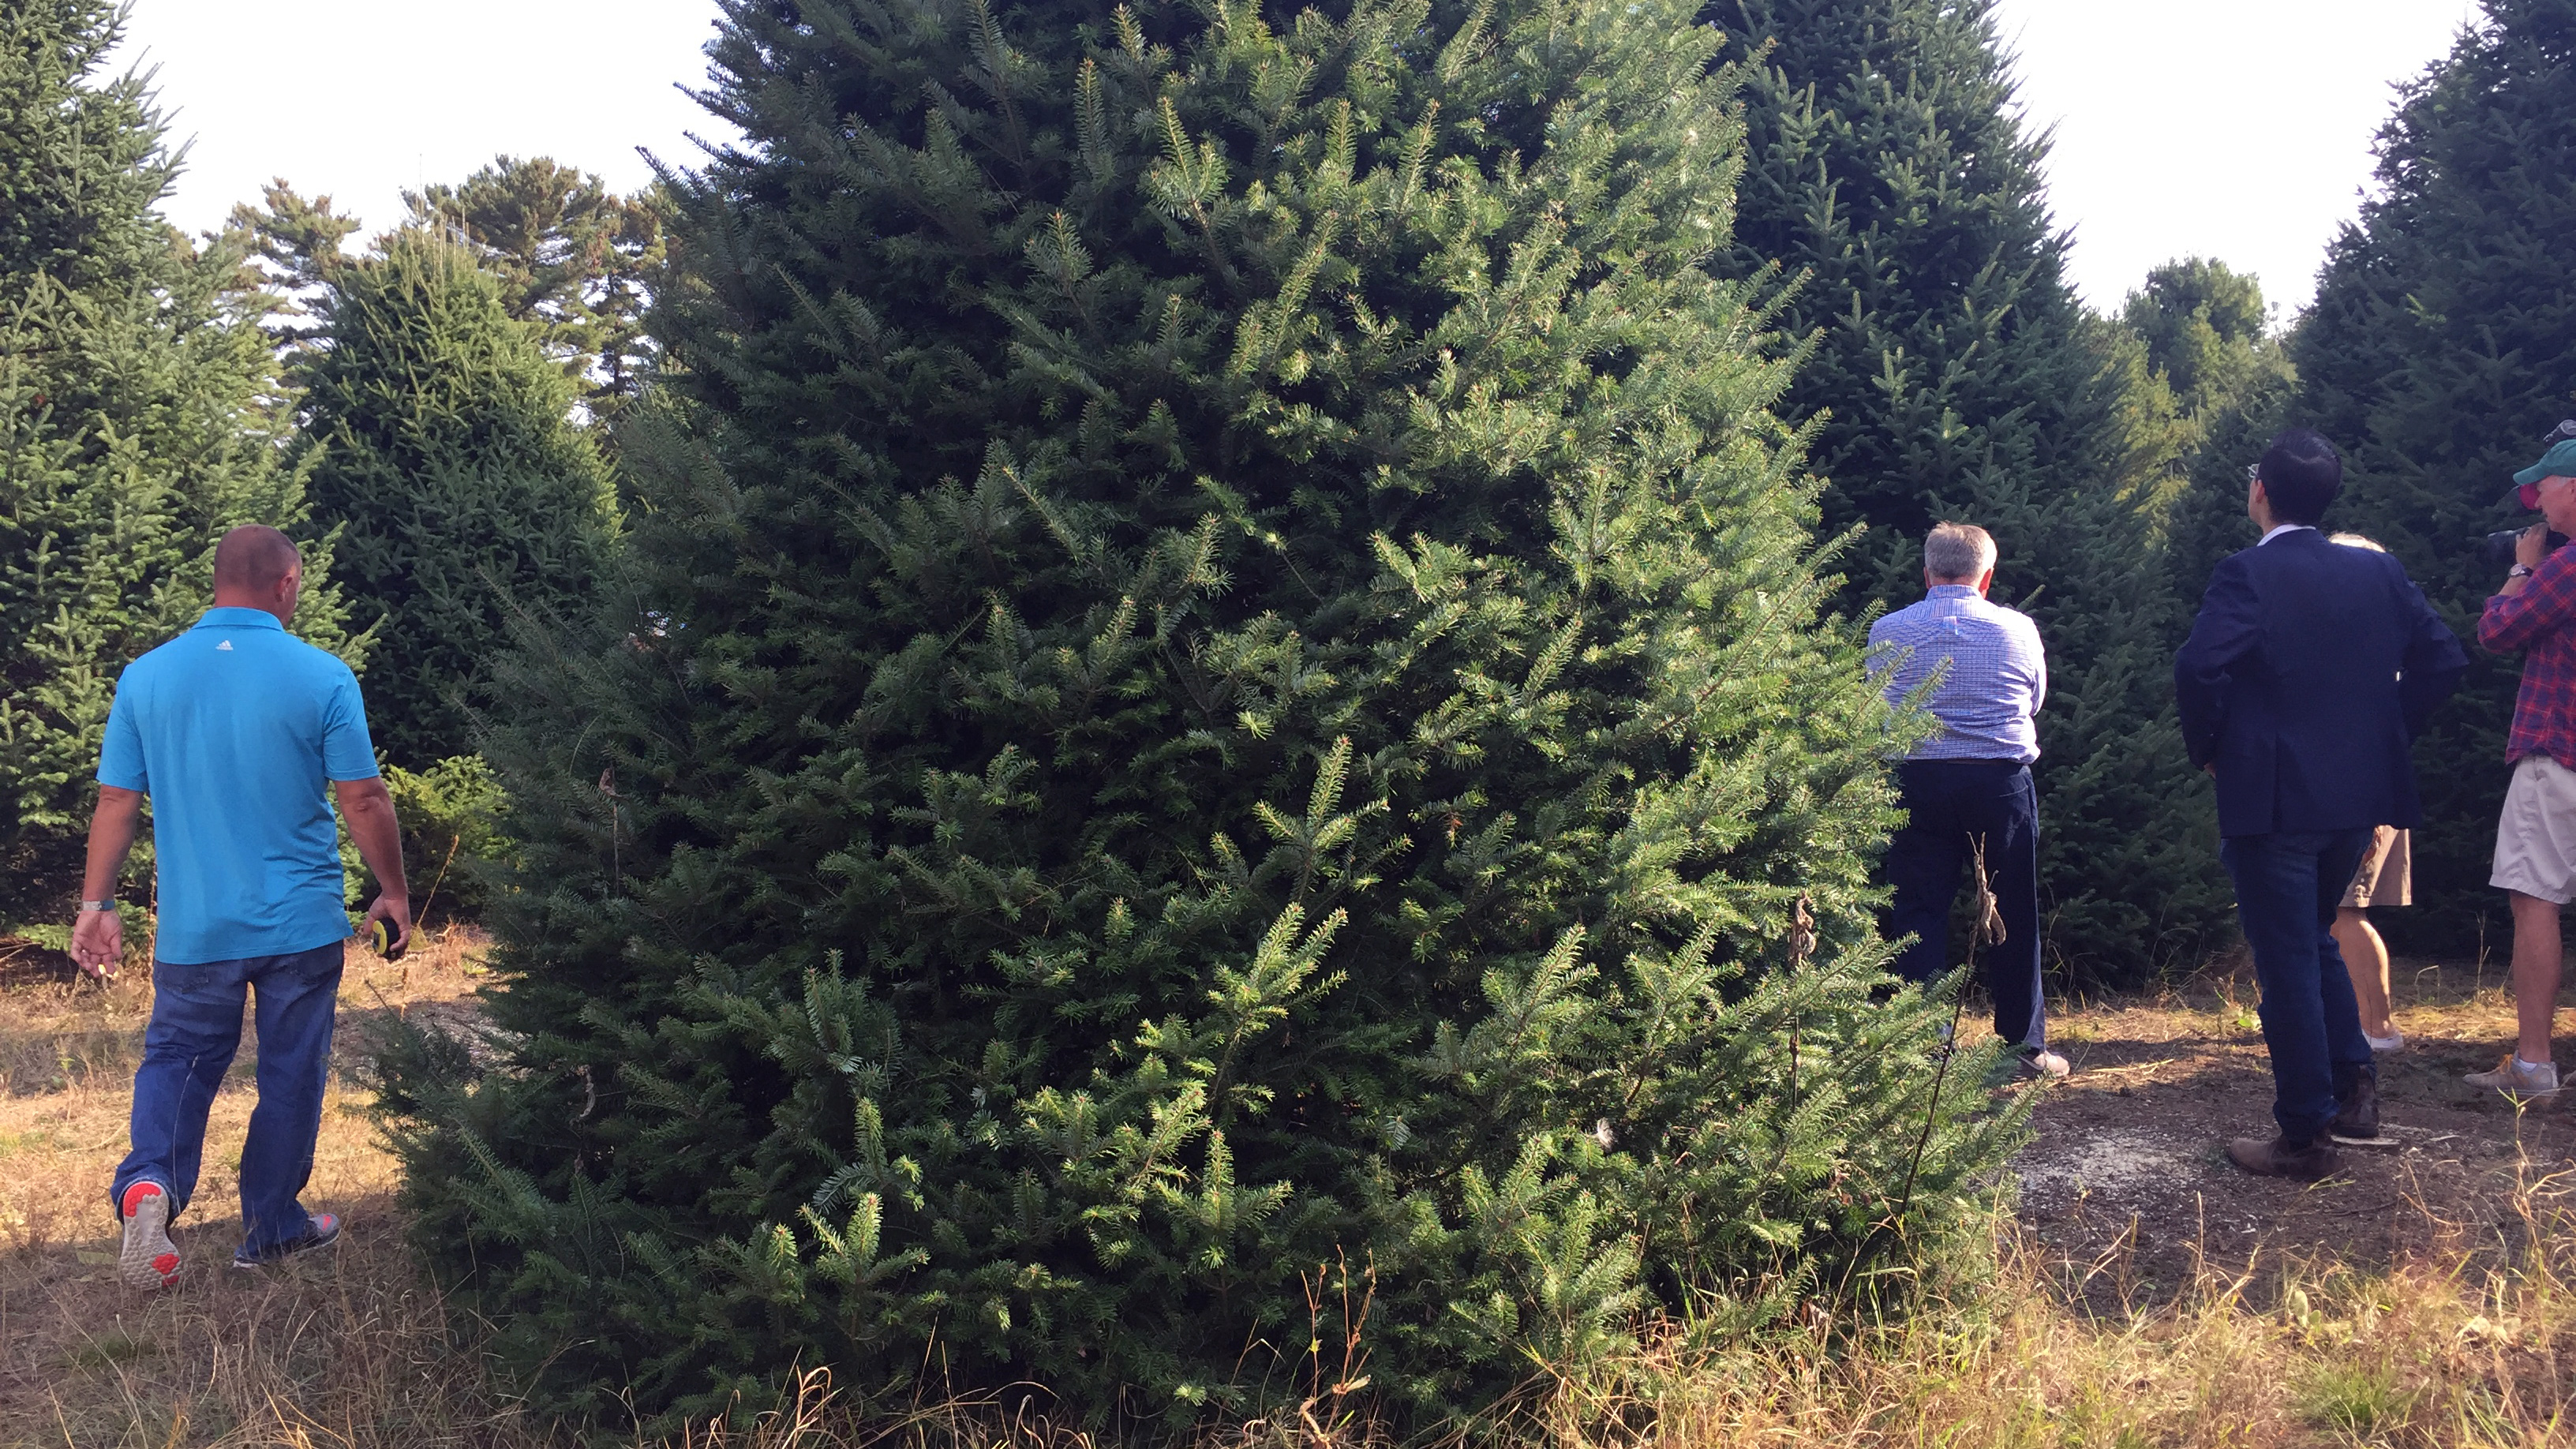 Representatives from the White House and Silent Night Evergreens examine potential Christmas trees for the Blue Room, Sept. 25, 2017, at Hanauer's Tree Farms in Shawano County. (WLUK/Pafoua Yang)